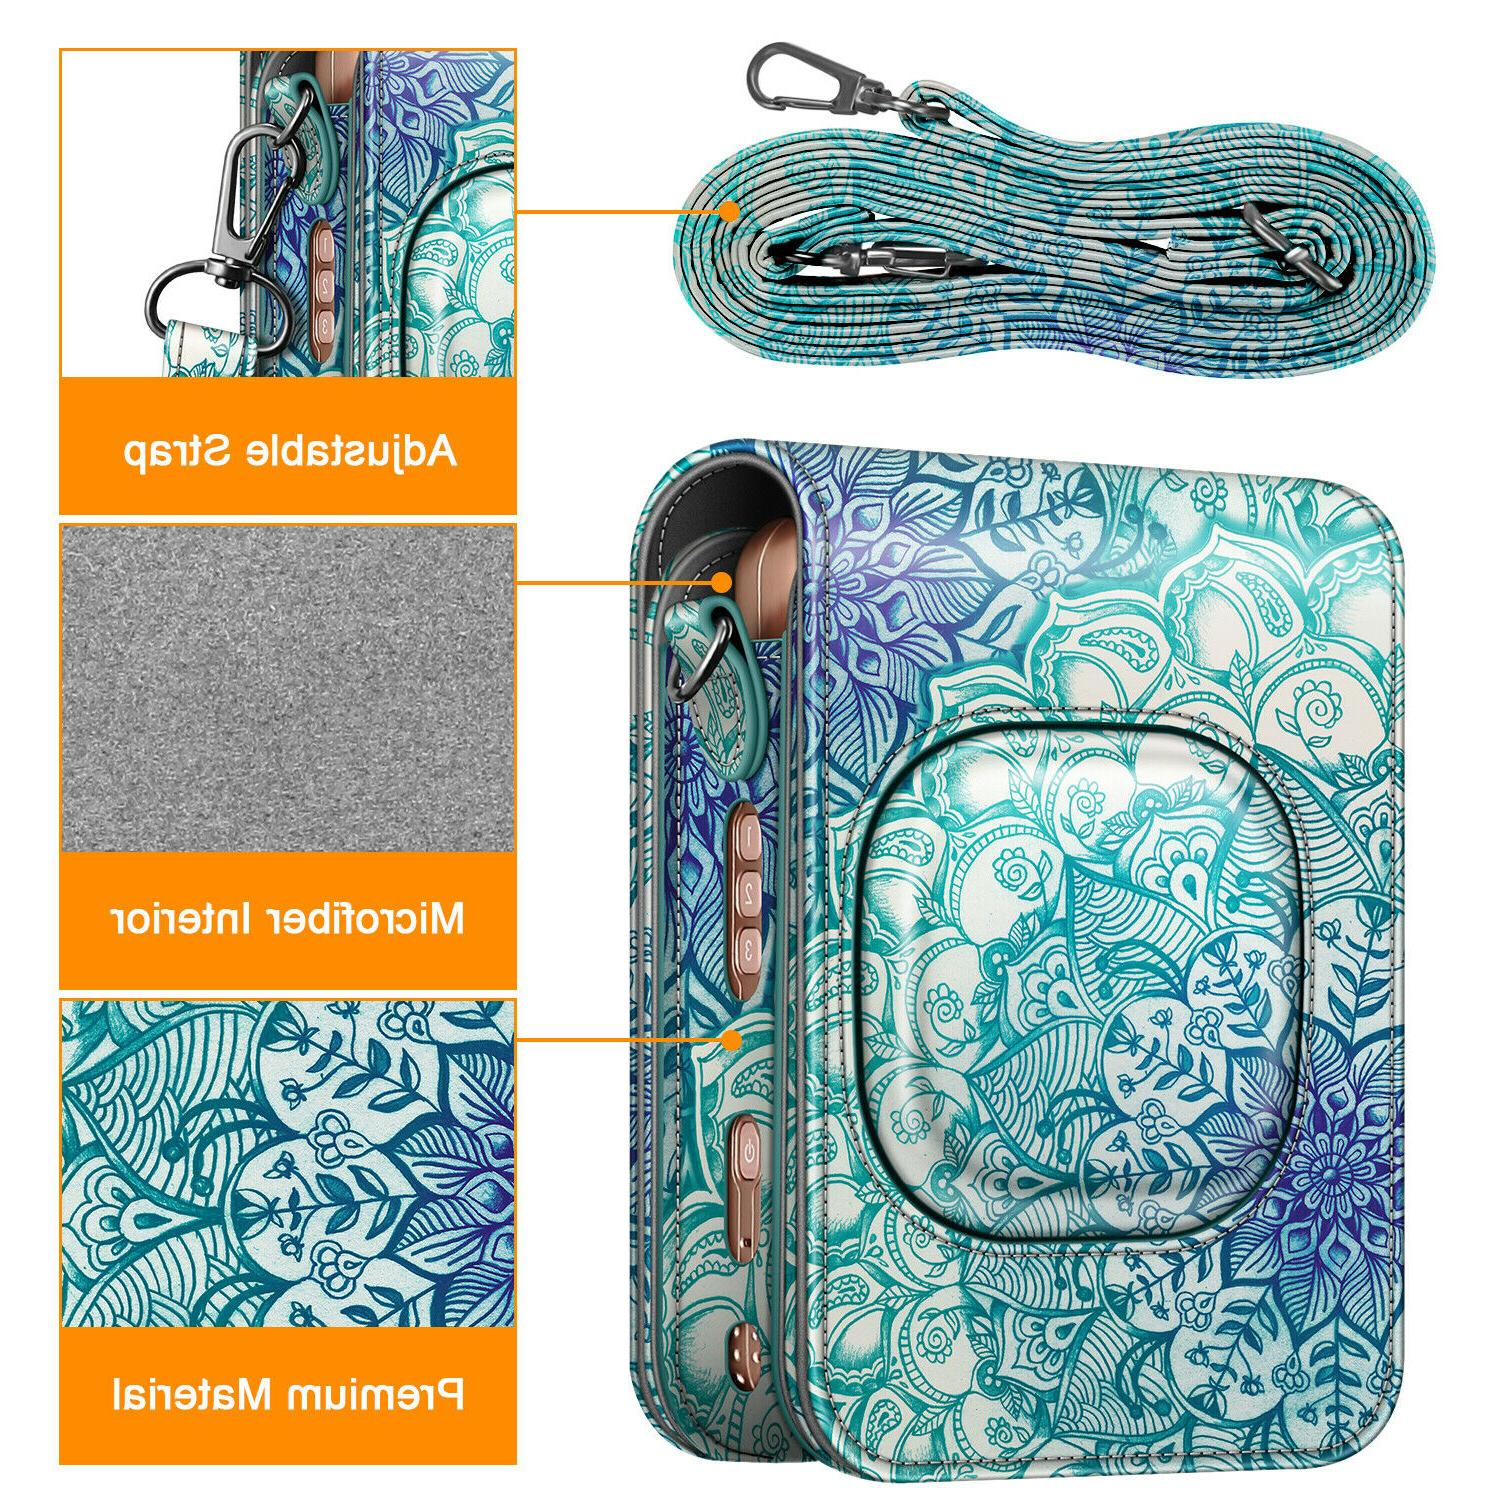 Shockproof Carrying Case for Fujifilm Instax Mini LiPlay Hyb